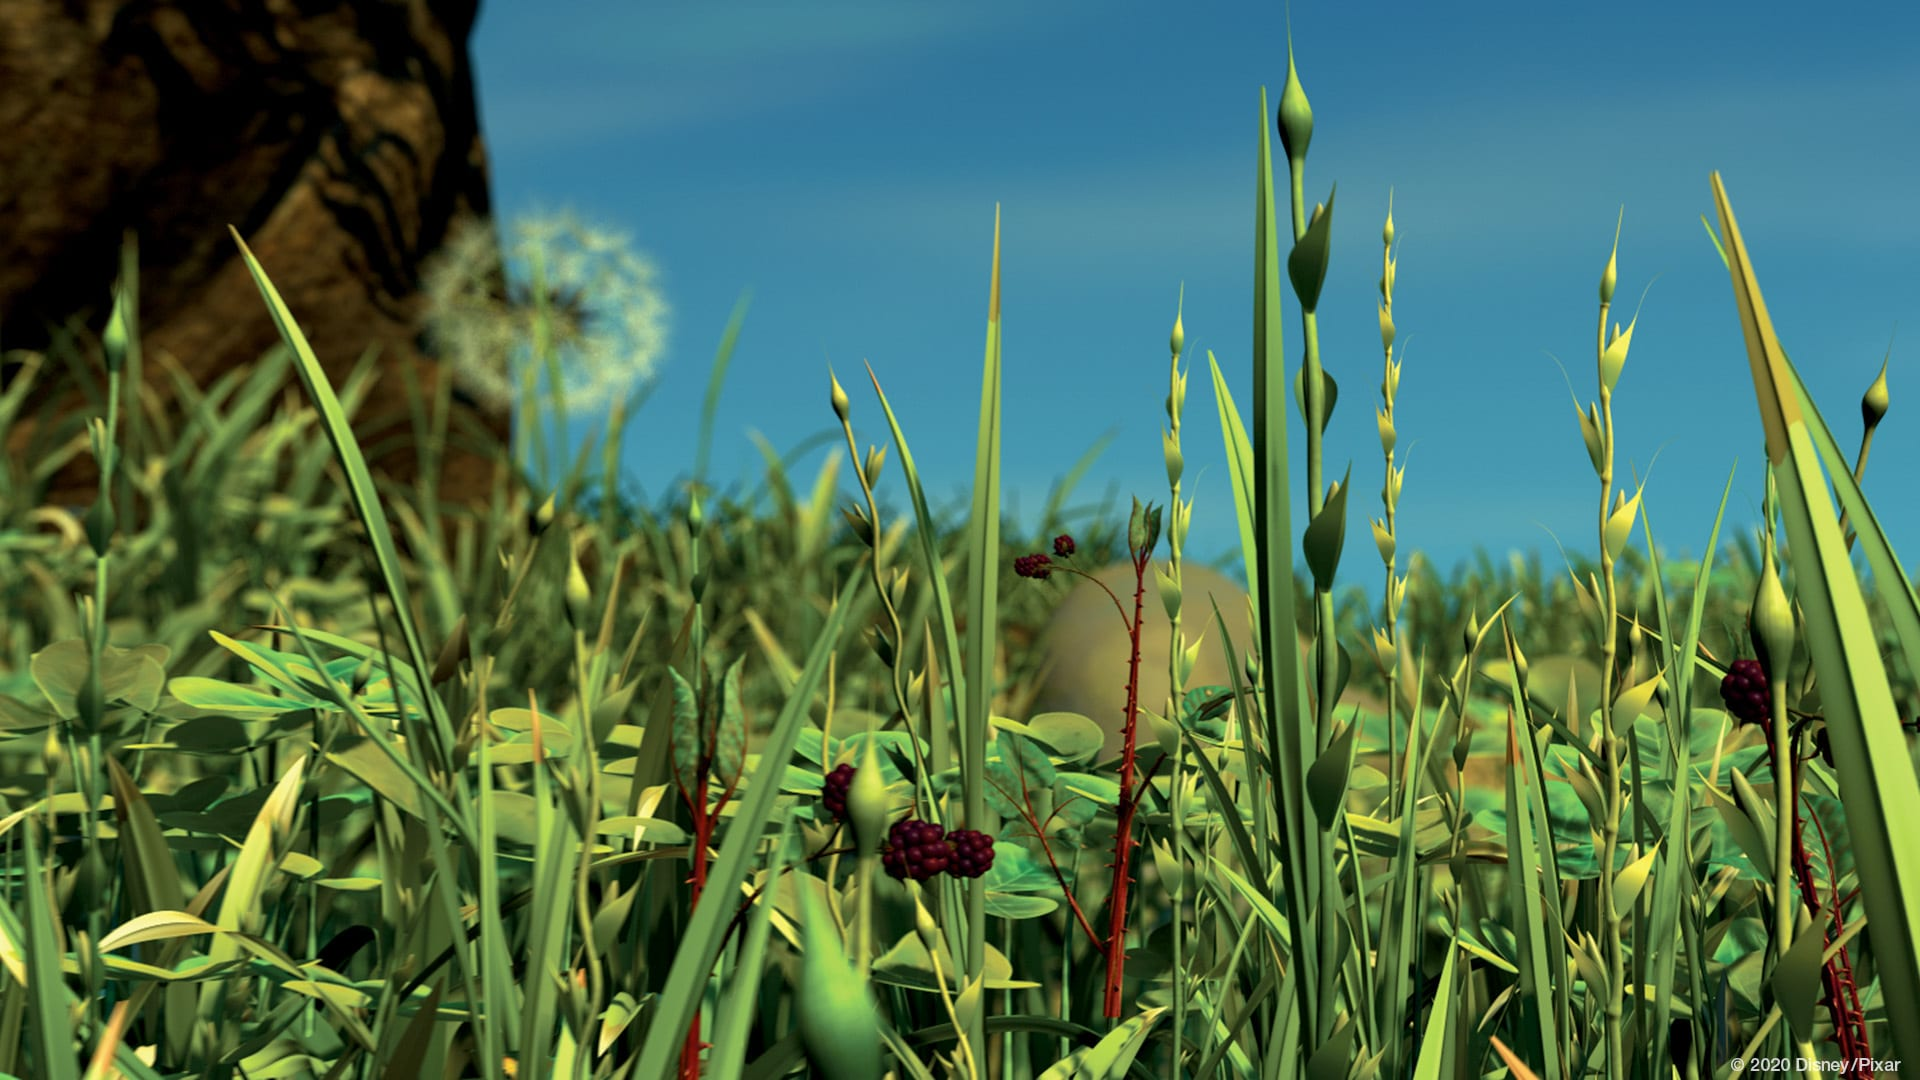 A Bugs Life - Garden view for an insect in Disney Pixar movie A Bugs Life